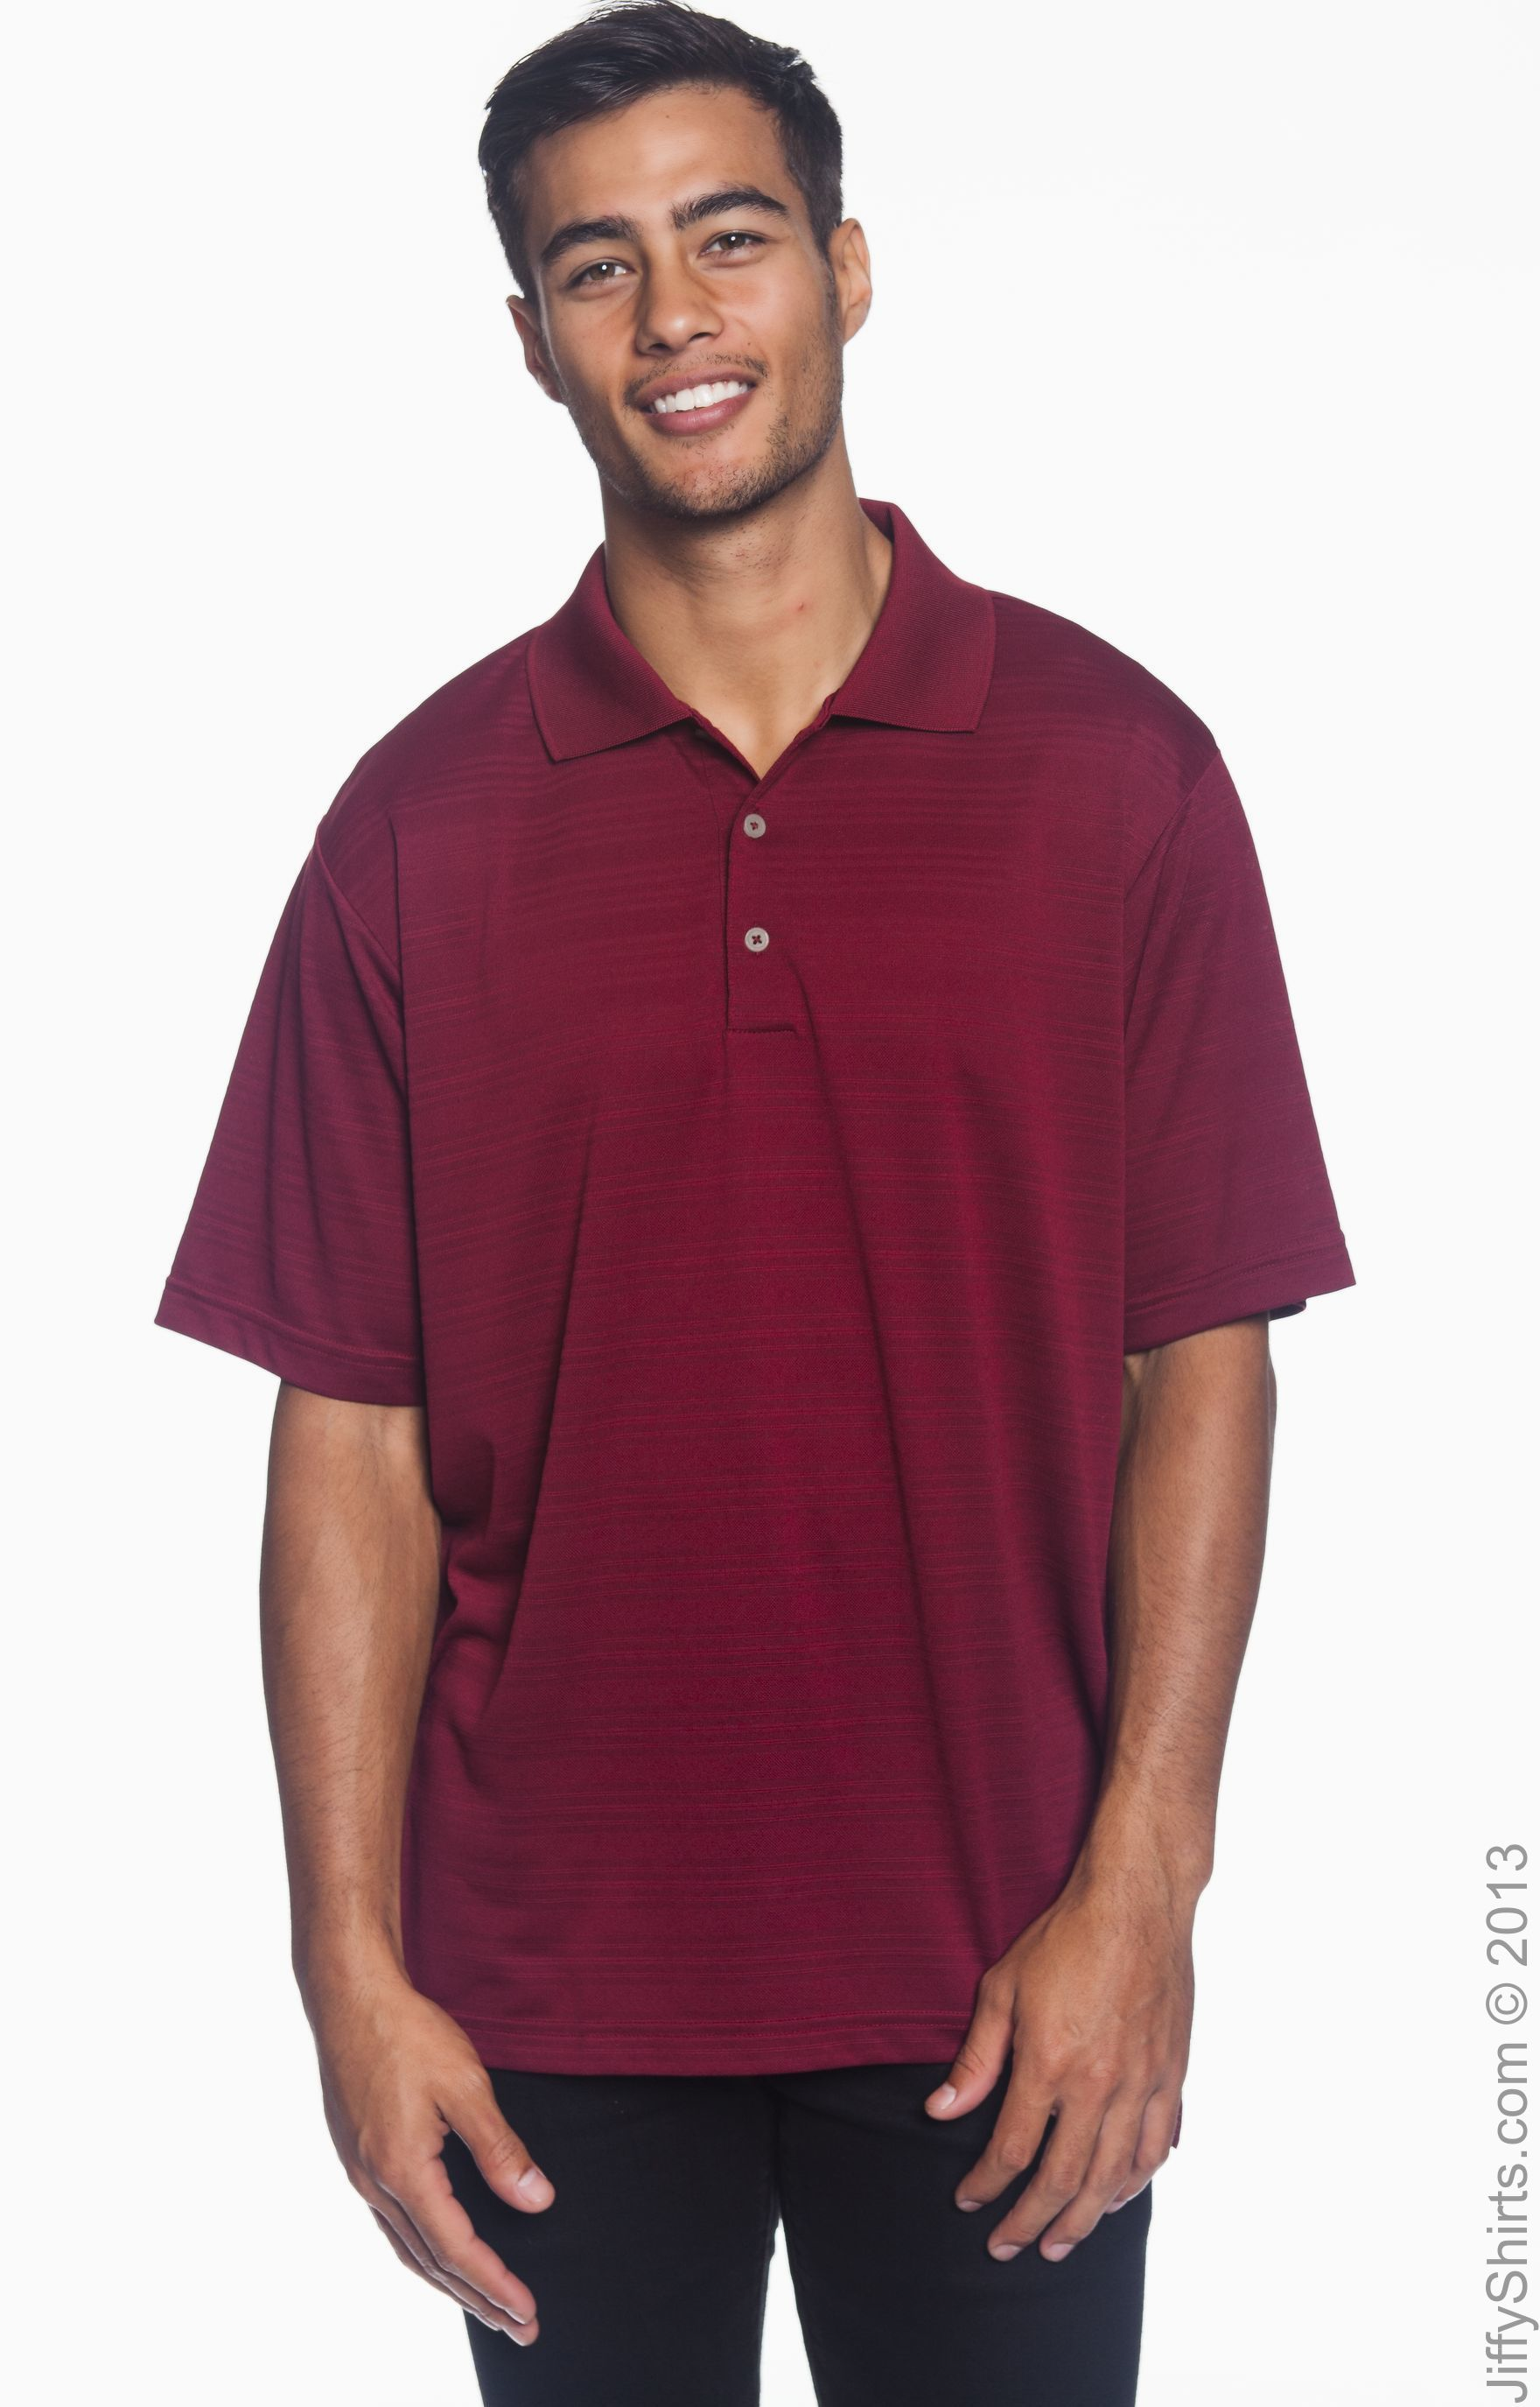 Men's Polo Climalite Adidas Textured A161 Sleeve Short n65H50